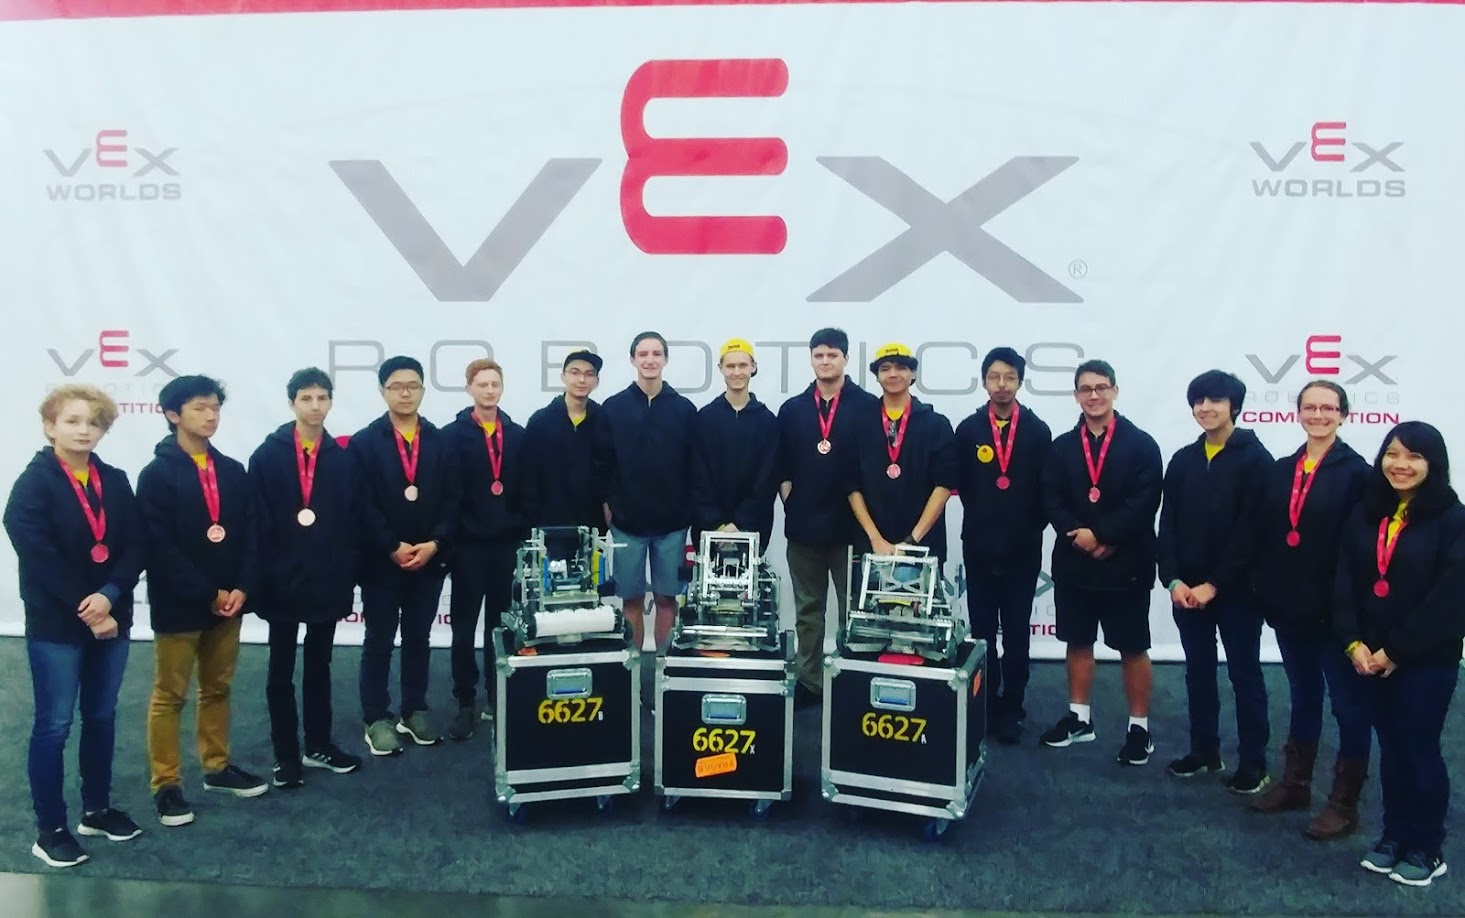 VEX Worlds Team